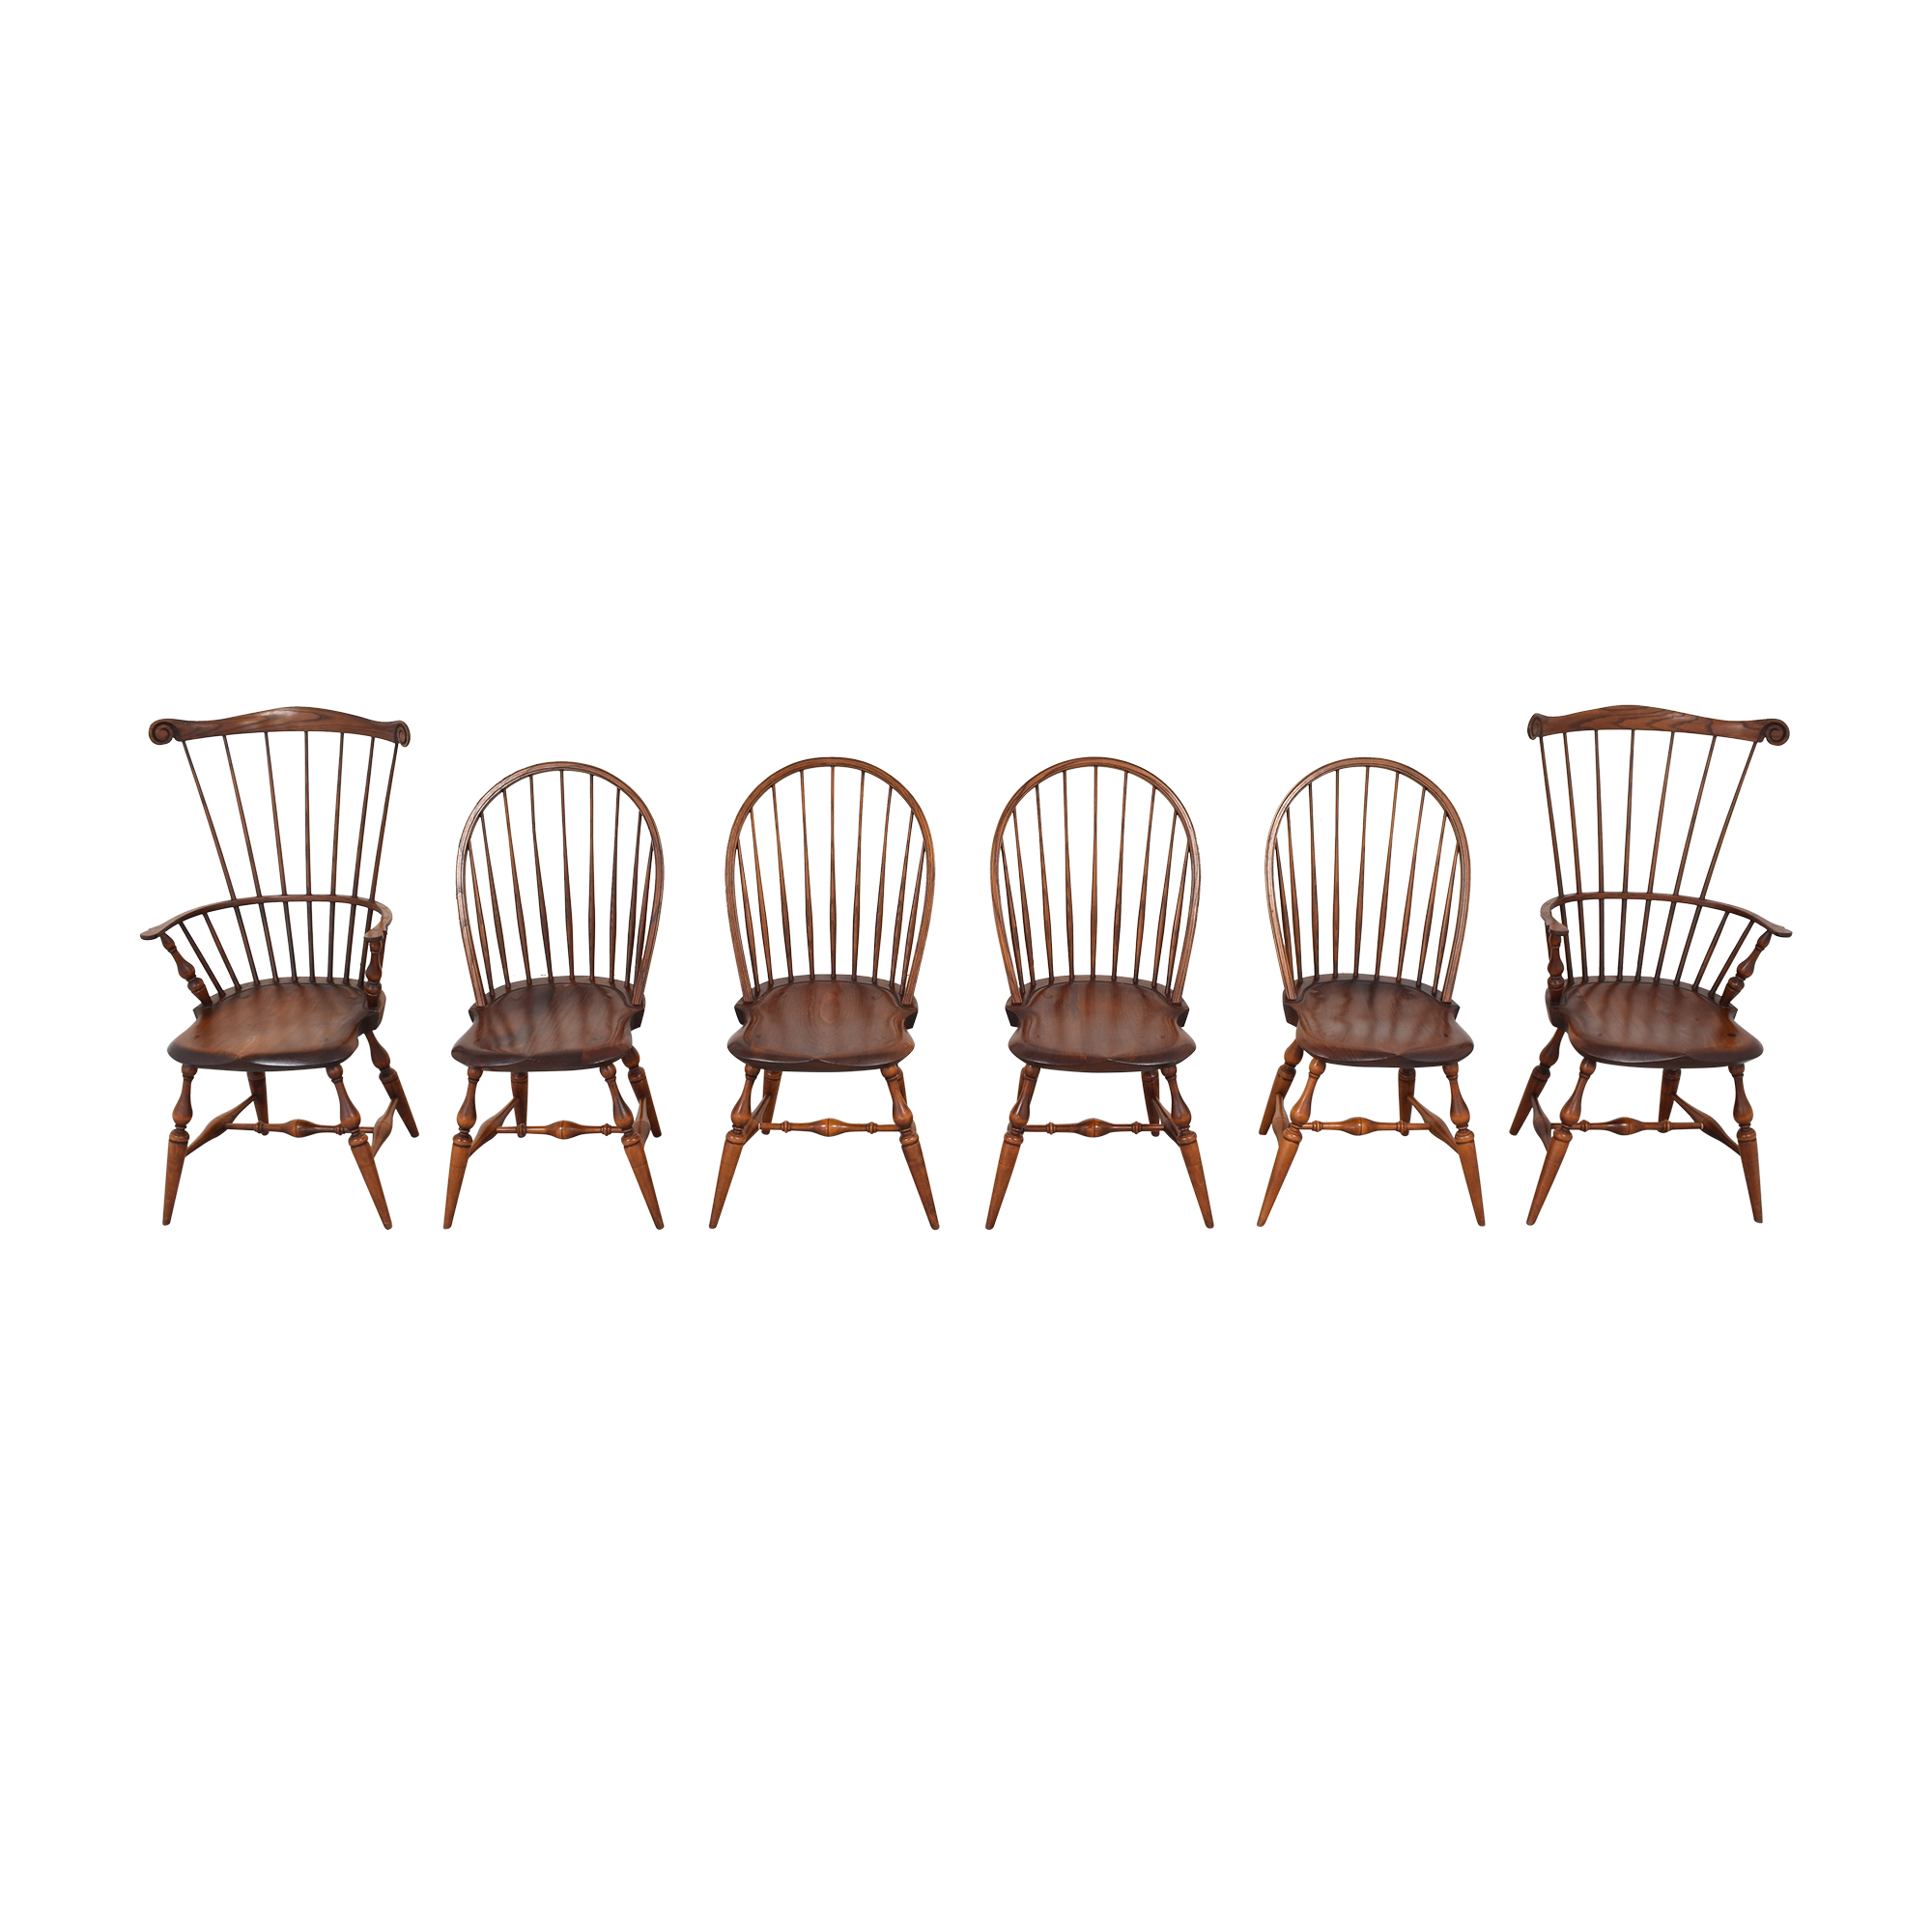 Warren Chair Works Warren Chair Works New England Dining Chairs Dining Chairs